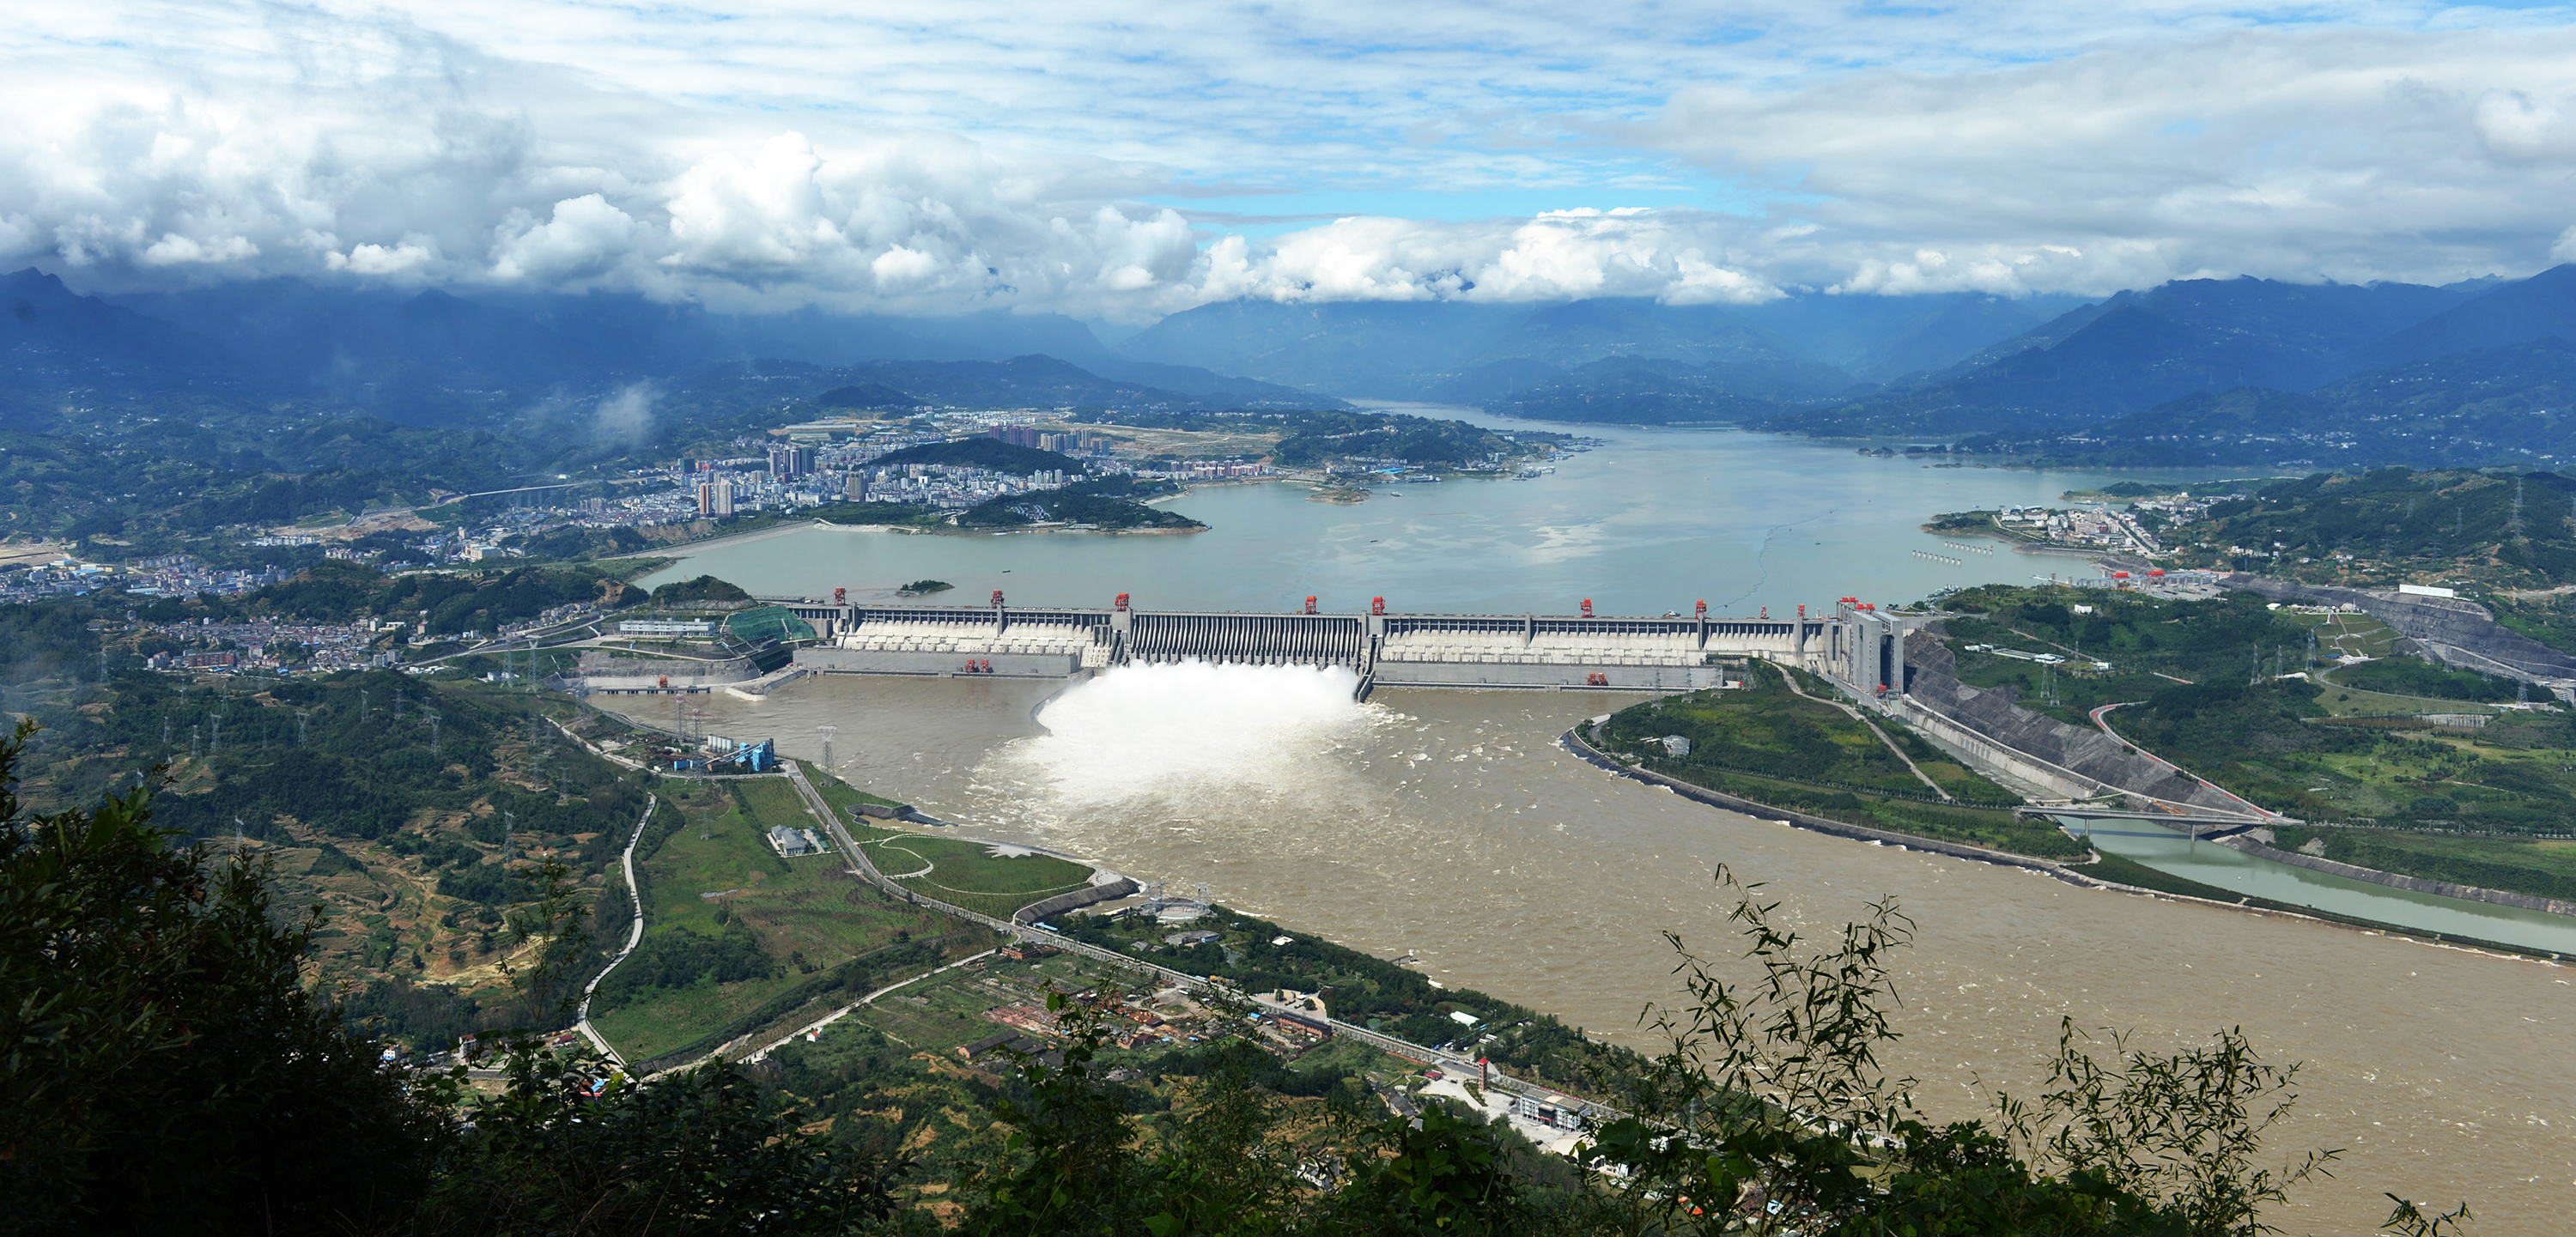 The Three Gorges Dam, which holds back China's Yangtze River, is the largest hydropower dam in the world. Photo by Imaginechina/Corbis